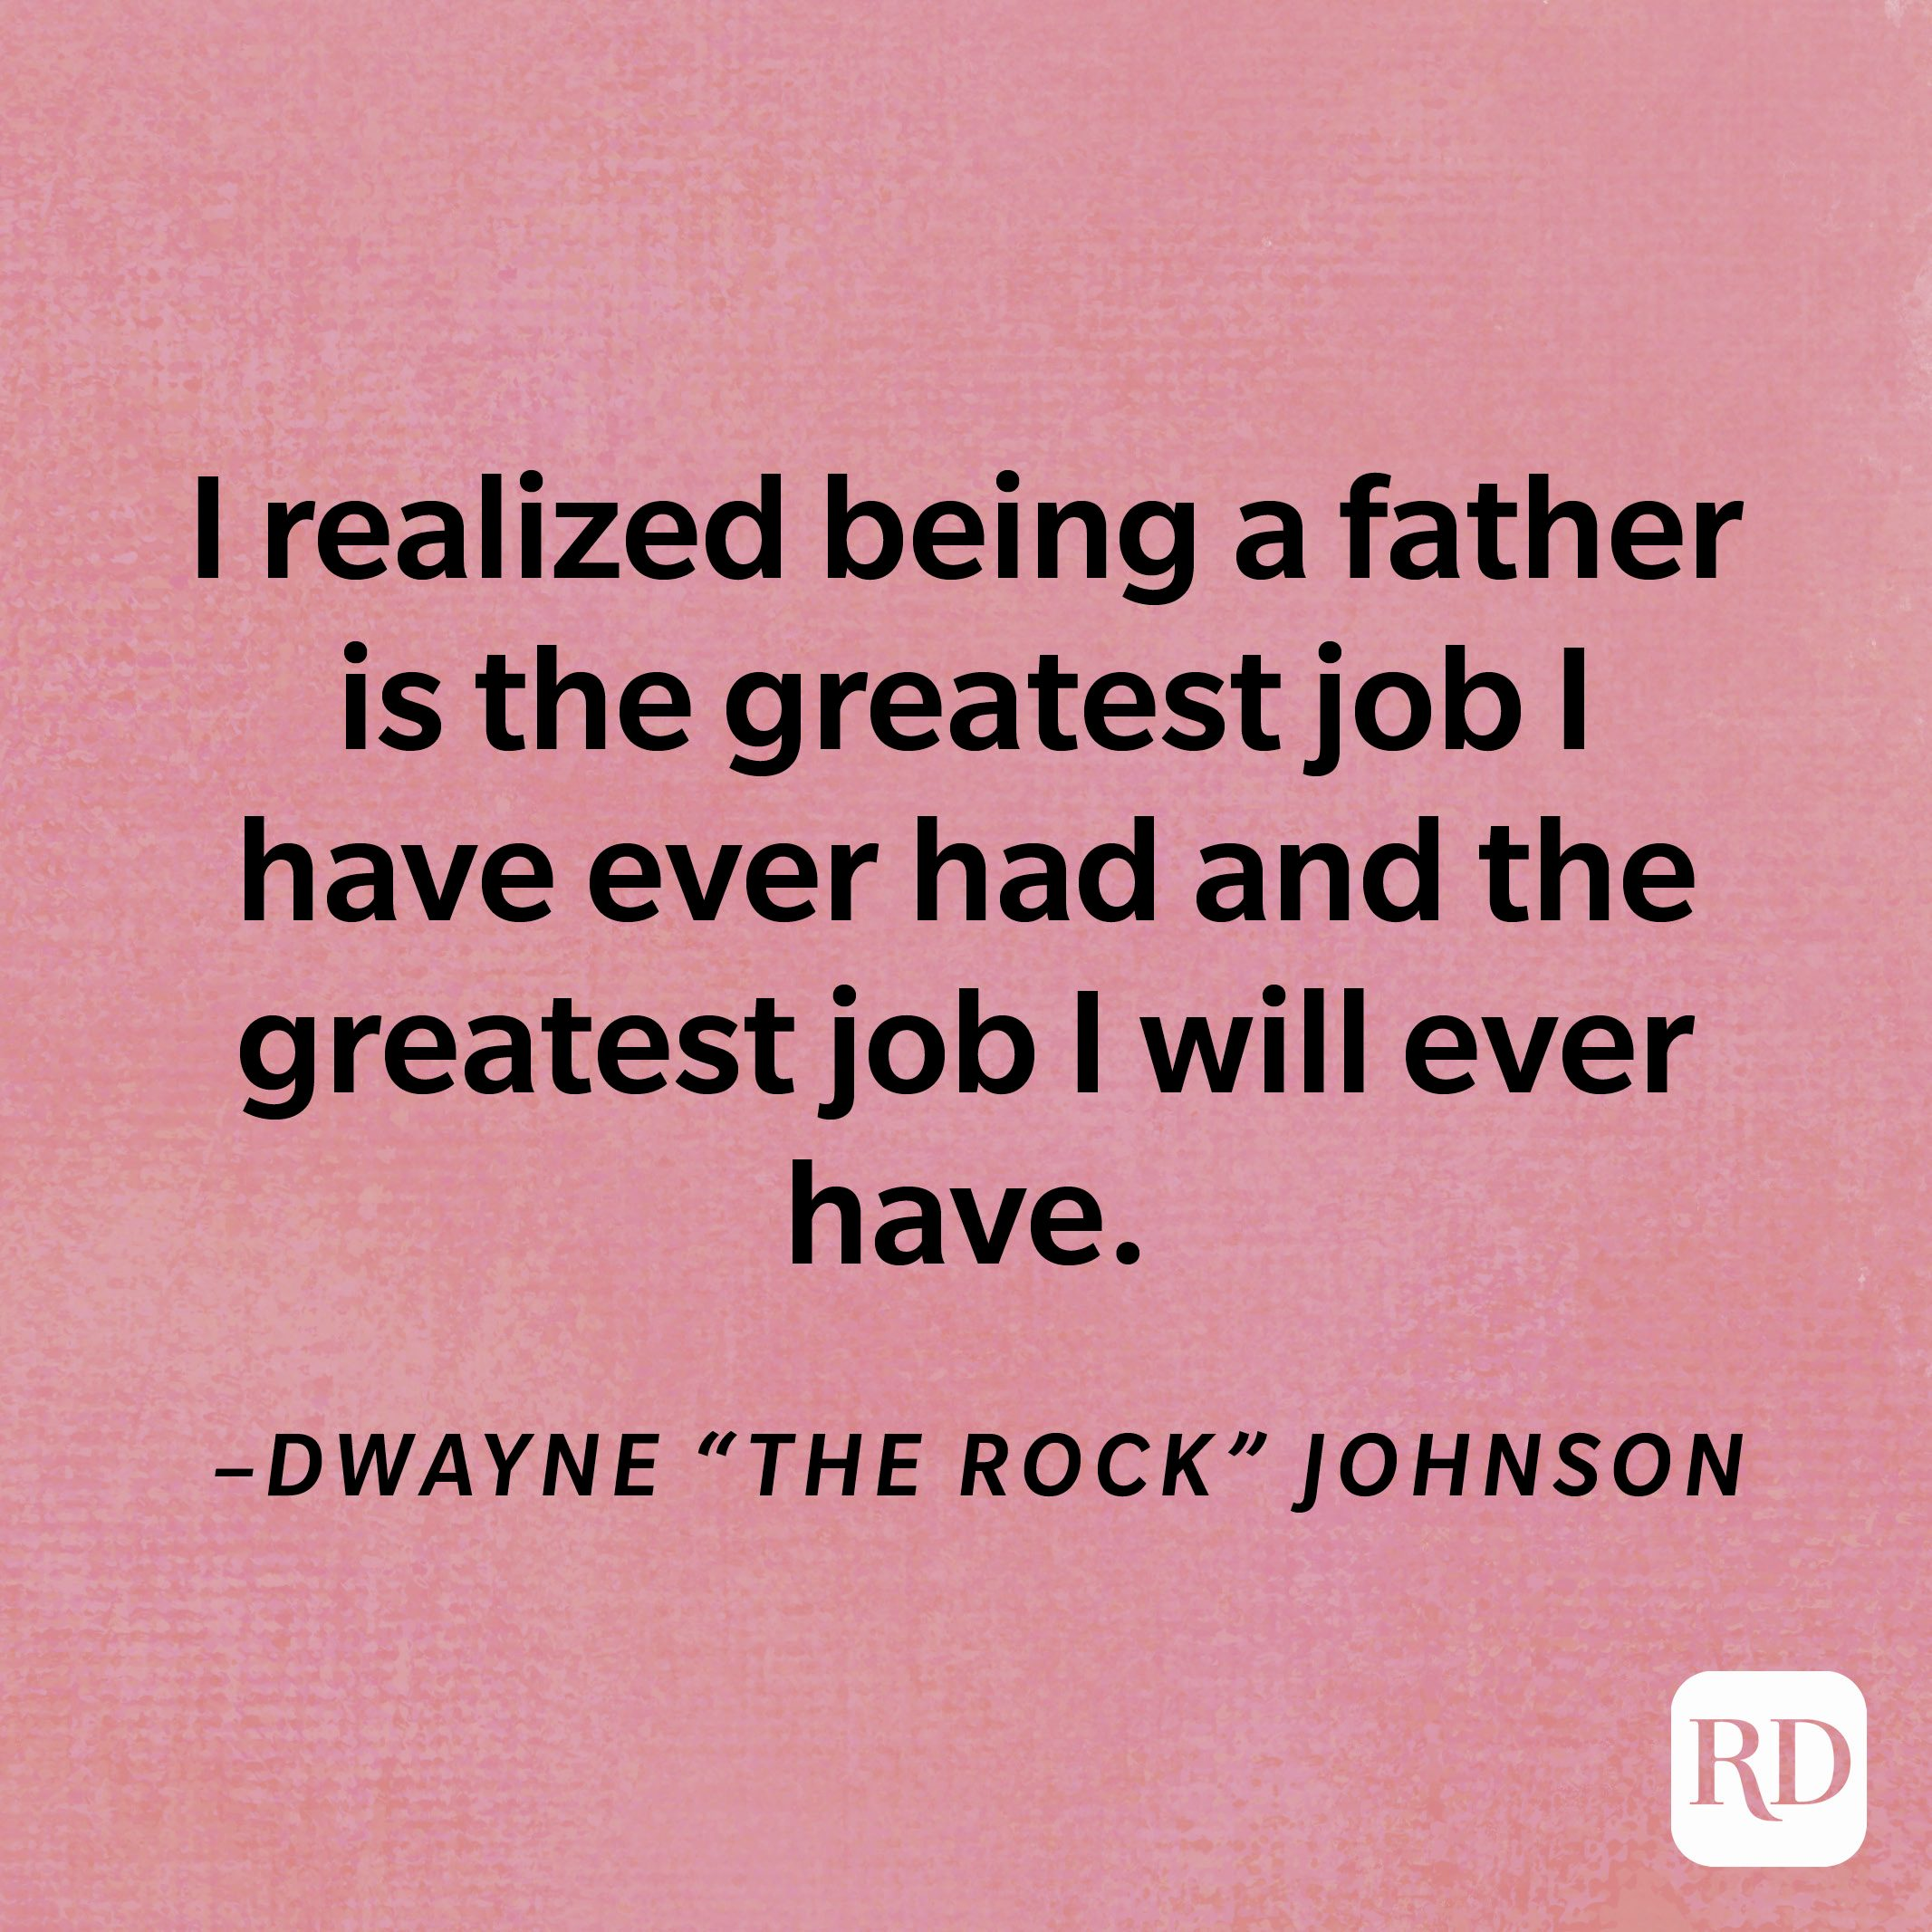 """""""I realized being a father is the greatest job I have ever had and the greatest job I will ever have.""""—Dwayne """"The Rock"""" Johnson"""